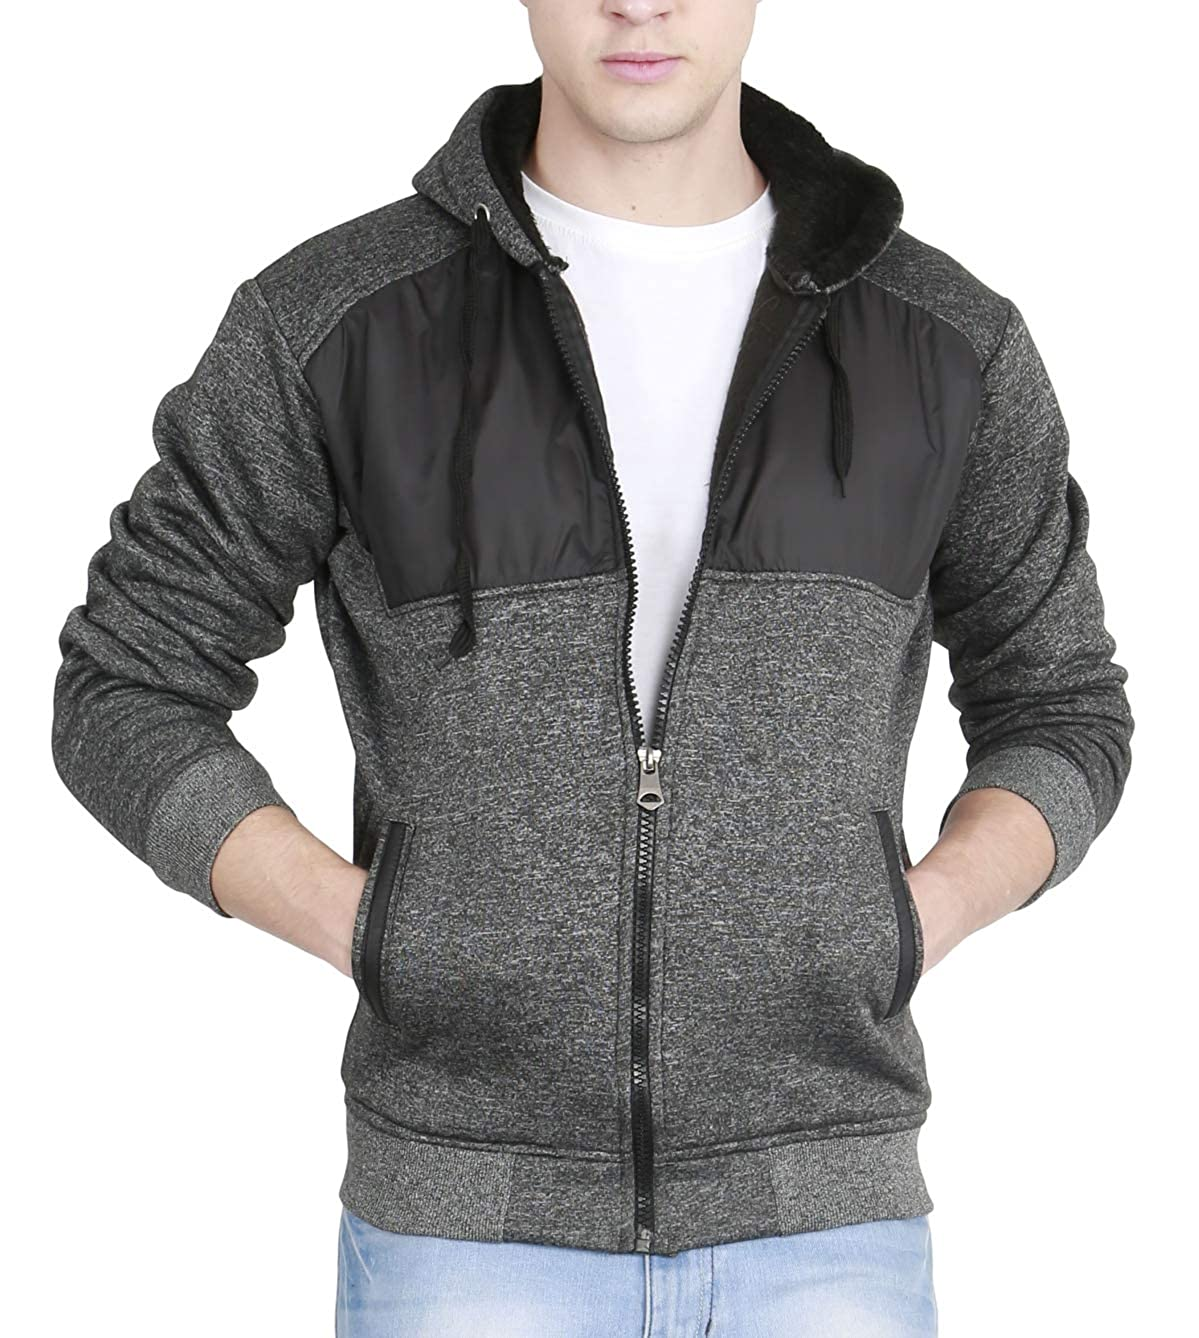 64133119e fanideaz Men's Cotton Quilted Hooded Sweatshirt with Zip: Amazon.in:  Clothing & Accessories